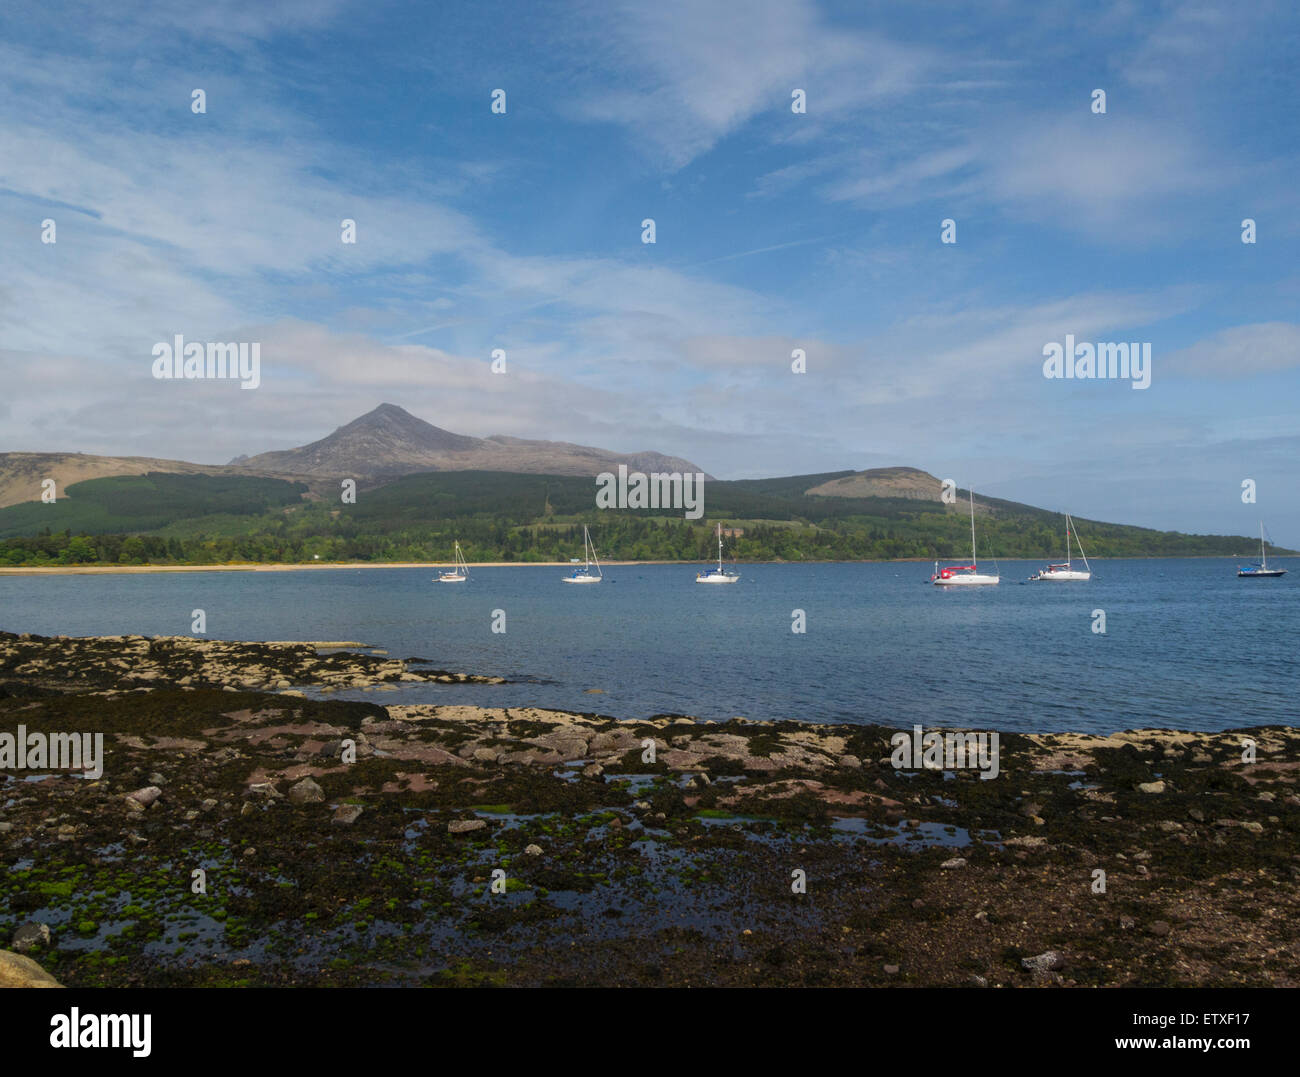 View across Firth of Clyde from Brodick to Goatfell Mountain Isle of Arran North Ayrshire Scotland on lovely May - Stock Image